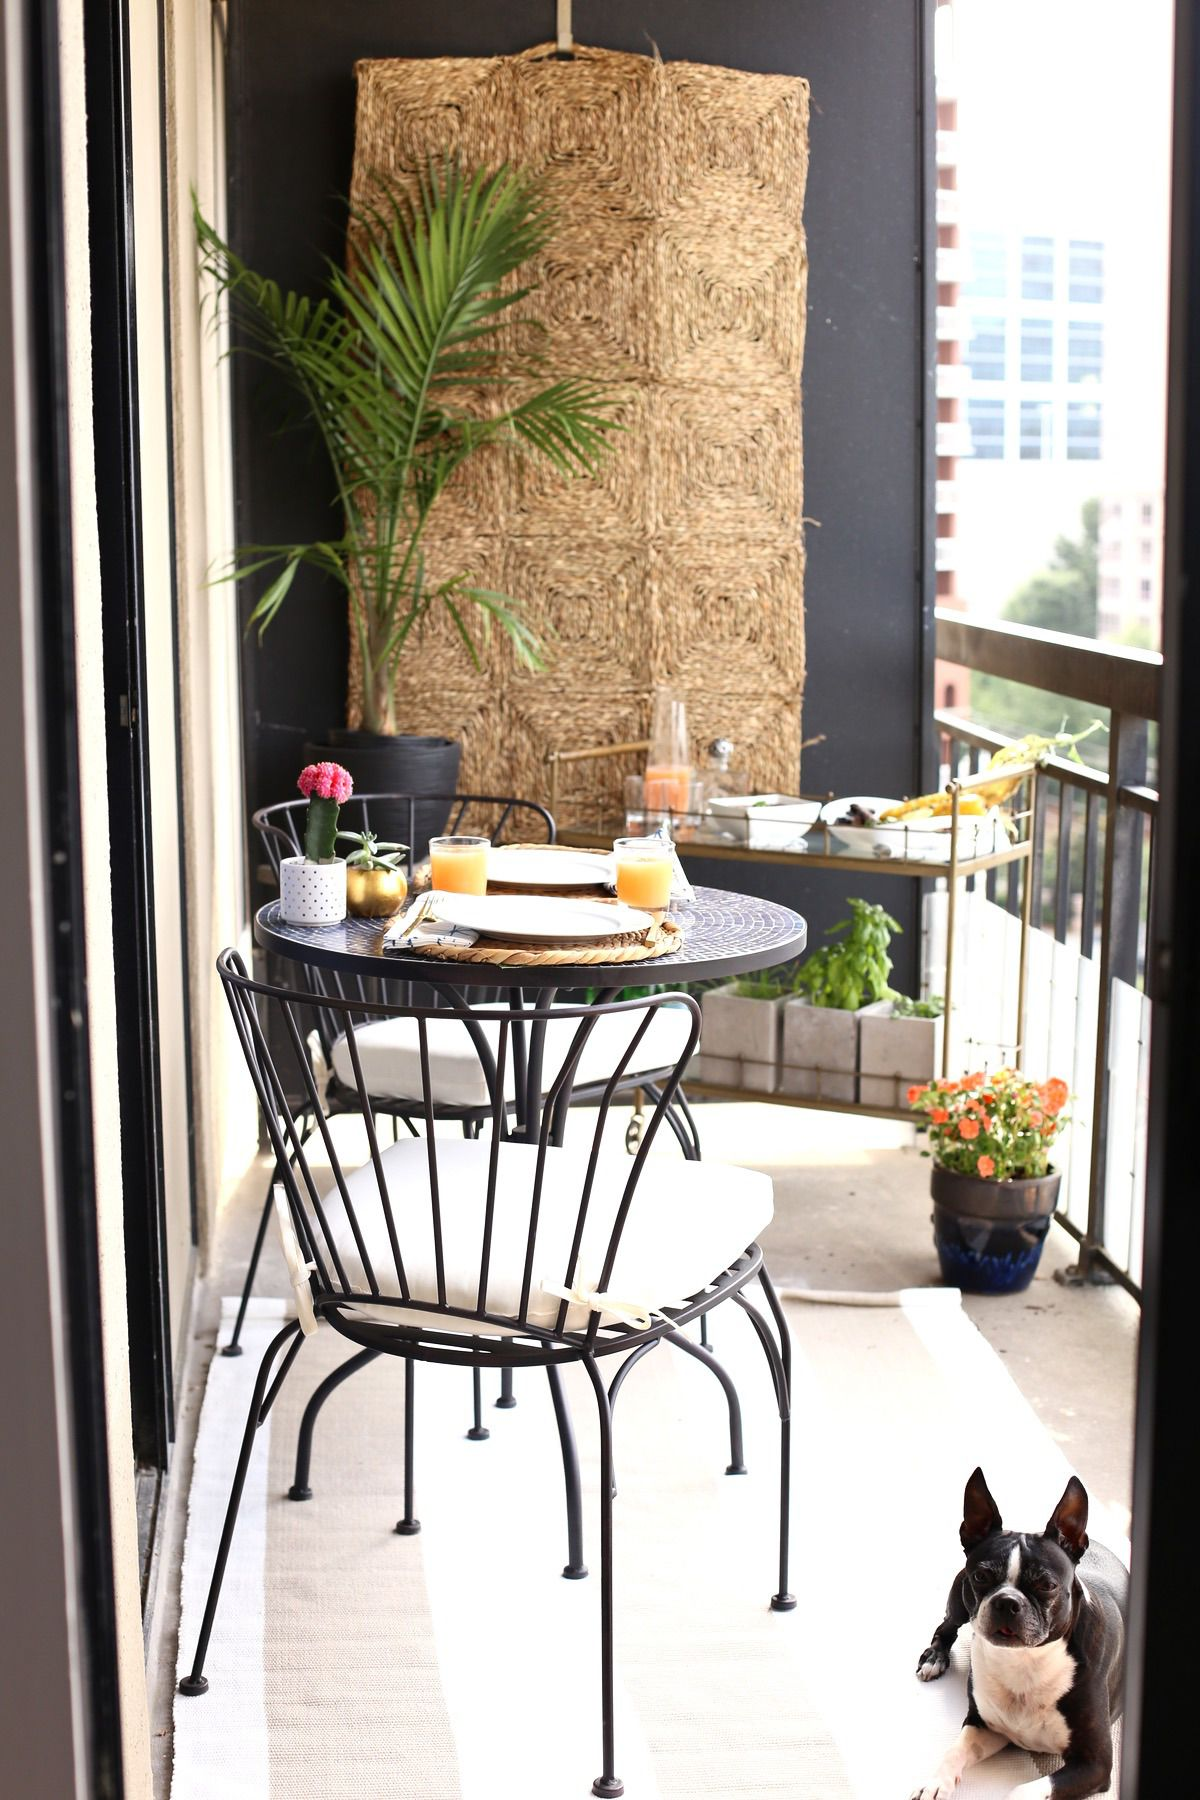 Outdoor Teppich Pro Idee High Rise Patio Ideas Nest Pinterest Balcony Small Balcony